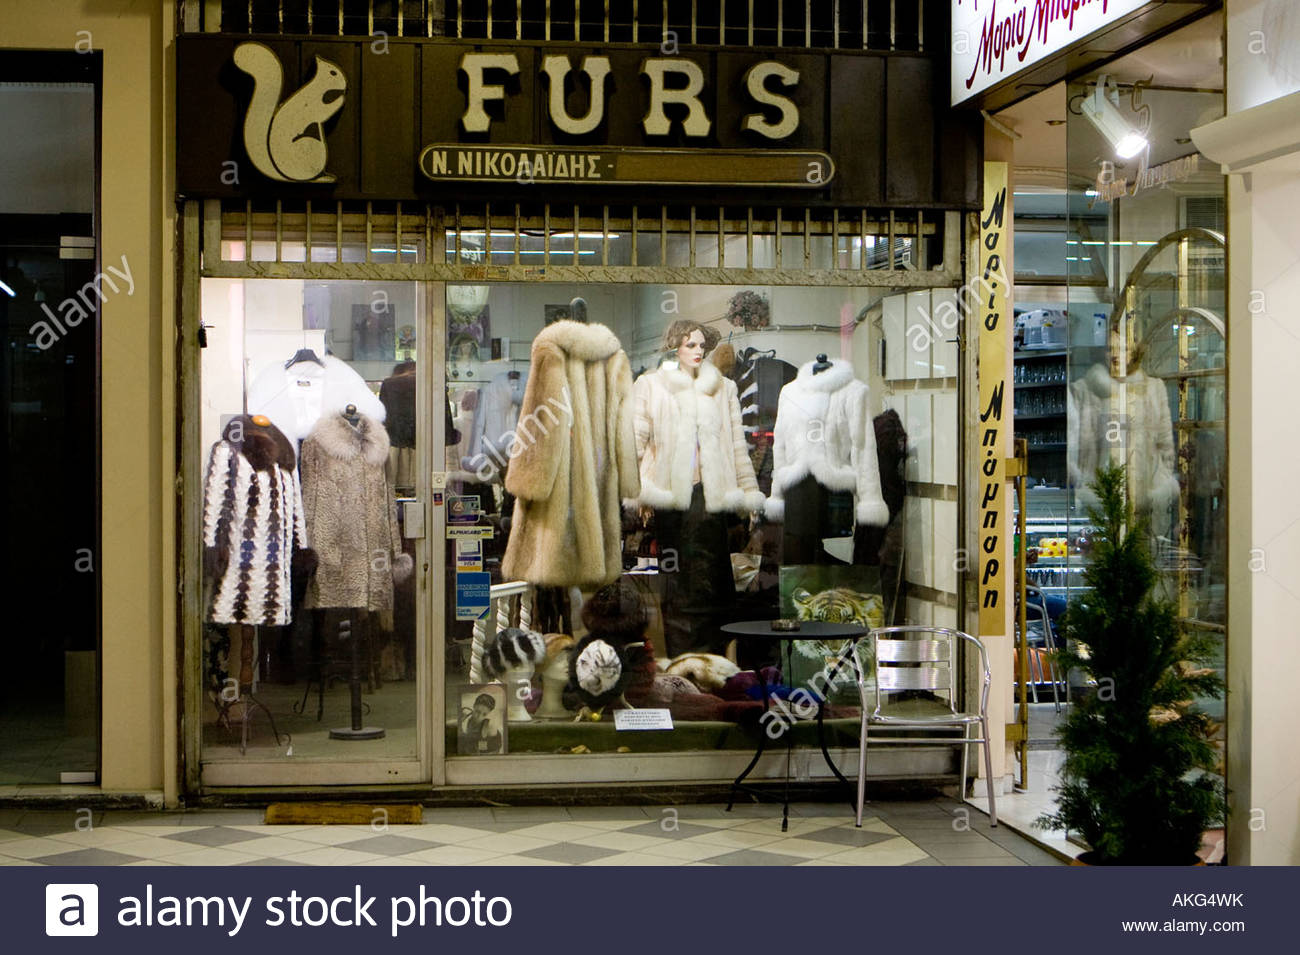 a shop selling fur coats in athens greece Stock Photo, Royalty ...